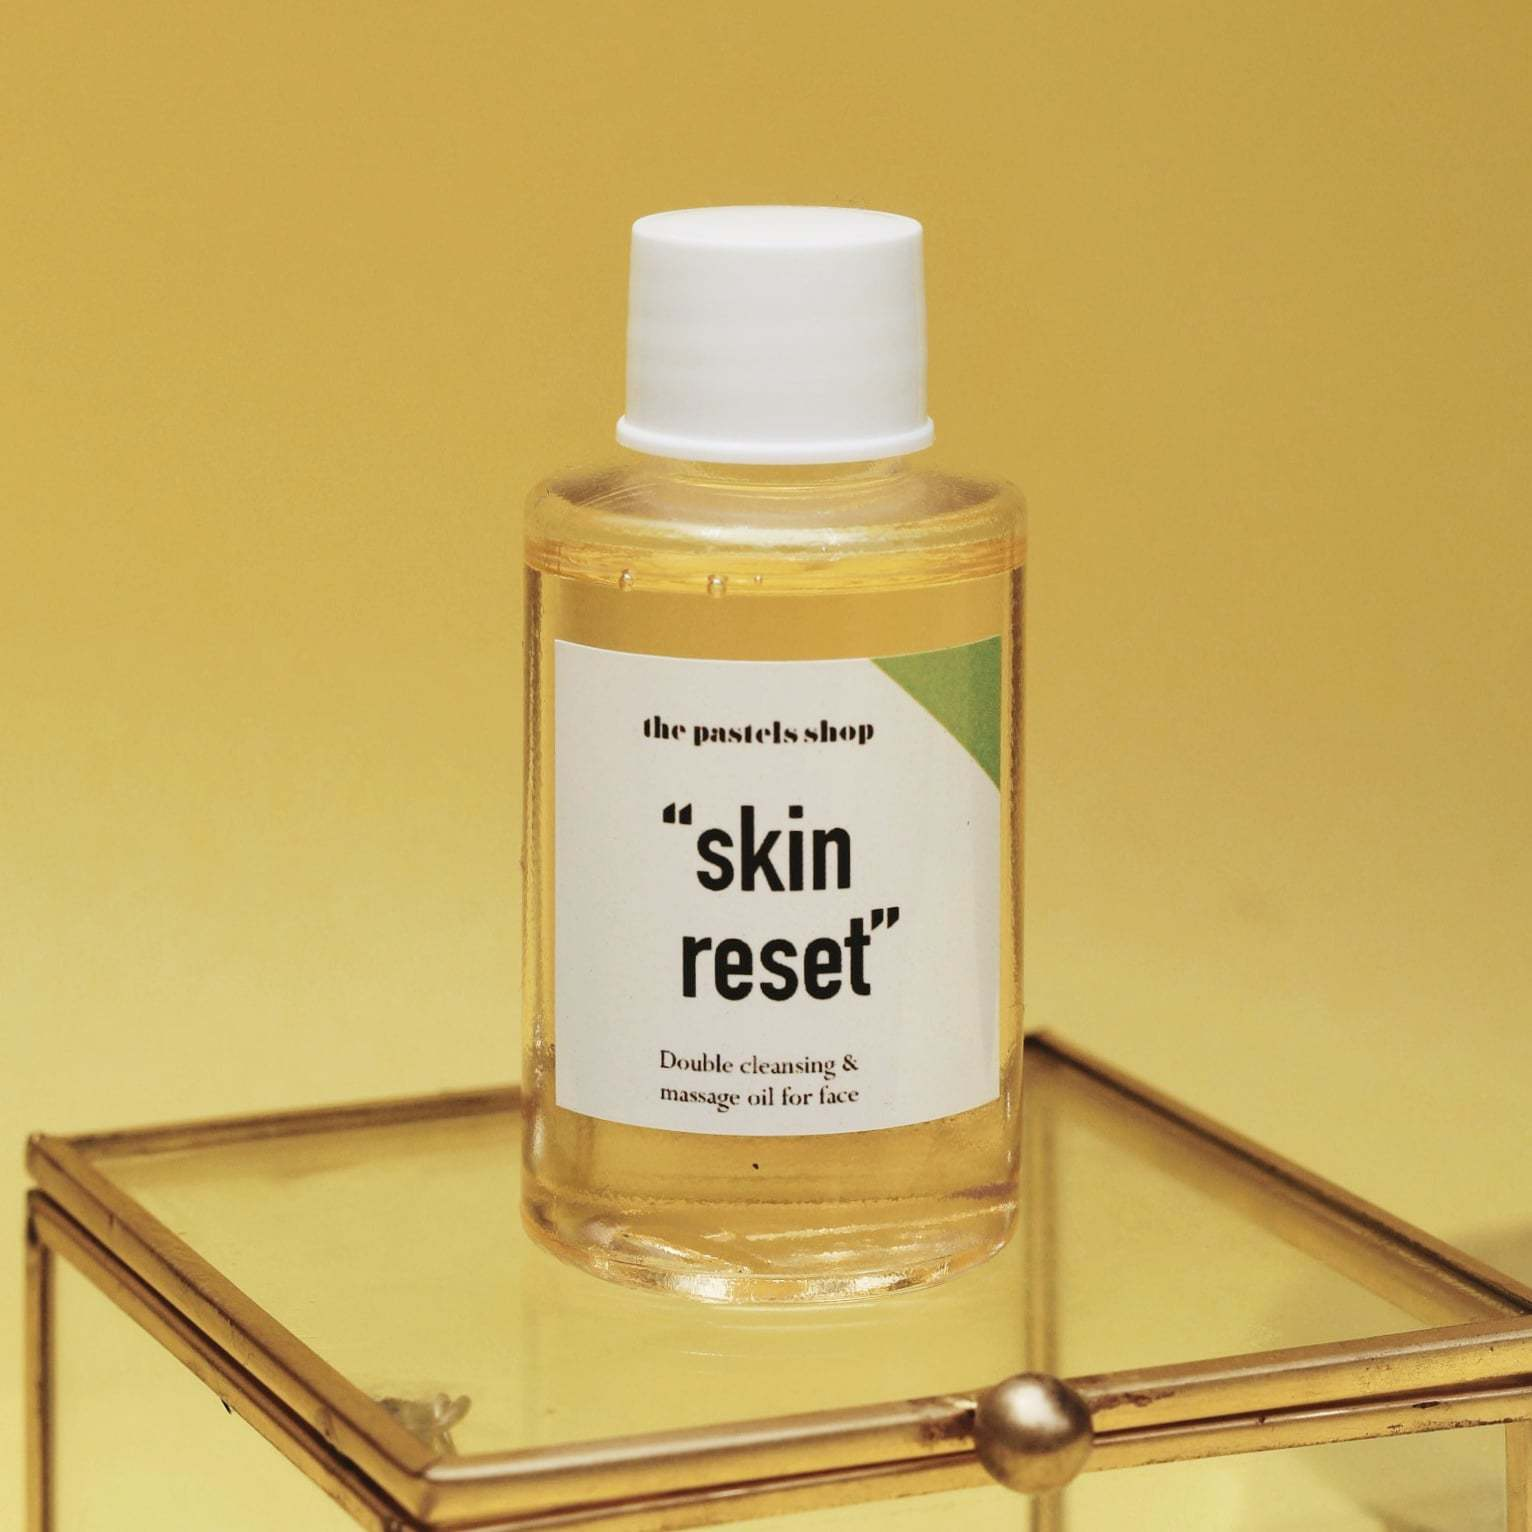 "THE PASTELS SHOP ""Skin Reset"" 35ml/ 110ml-35ml"